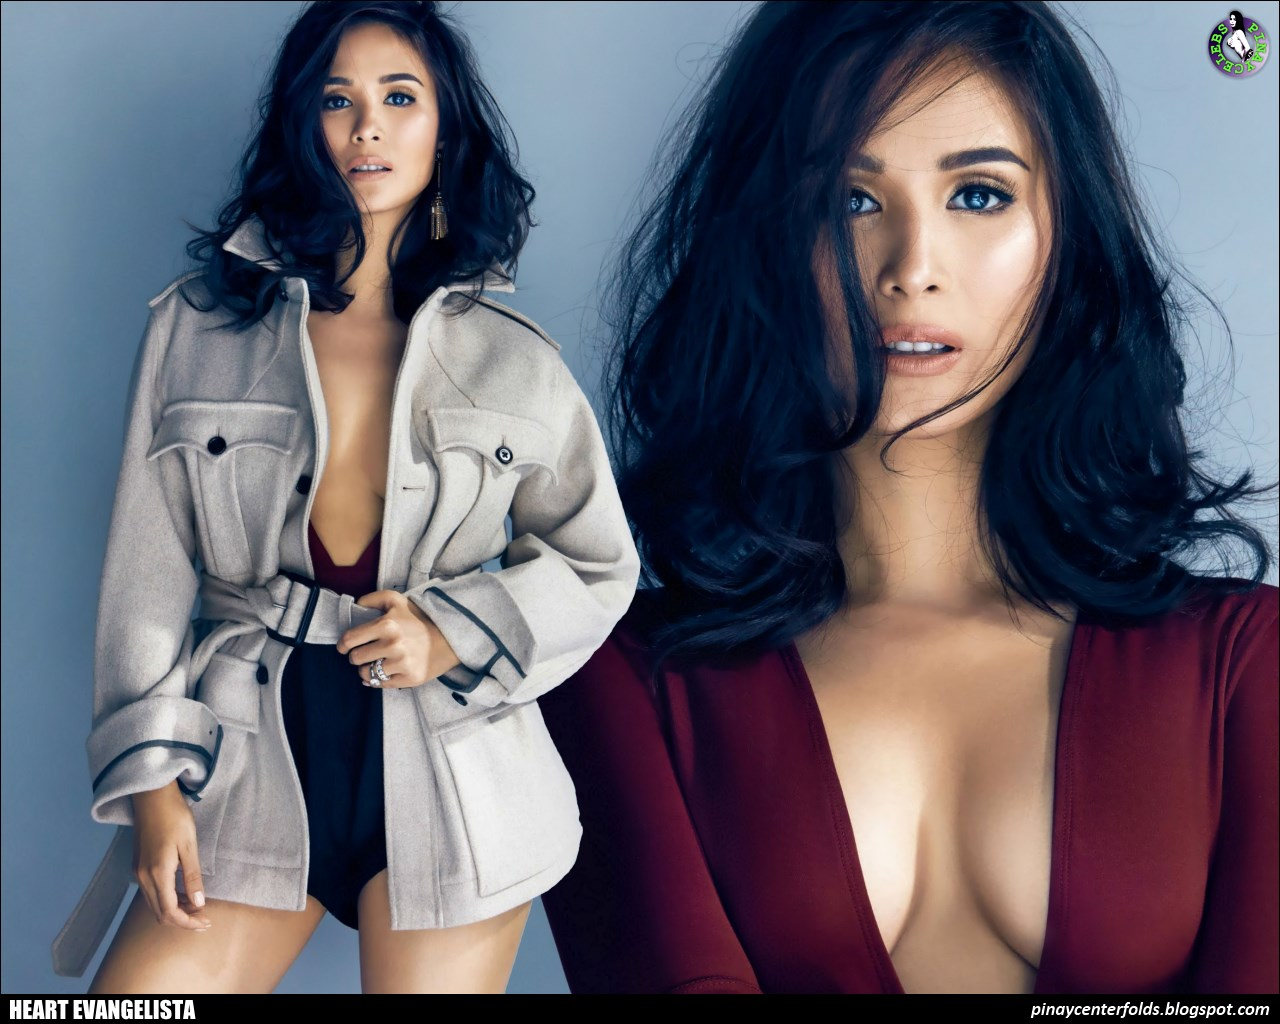 Heart creates stir with topless photo